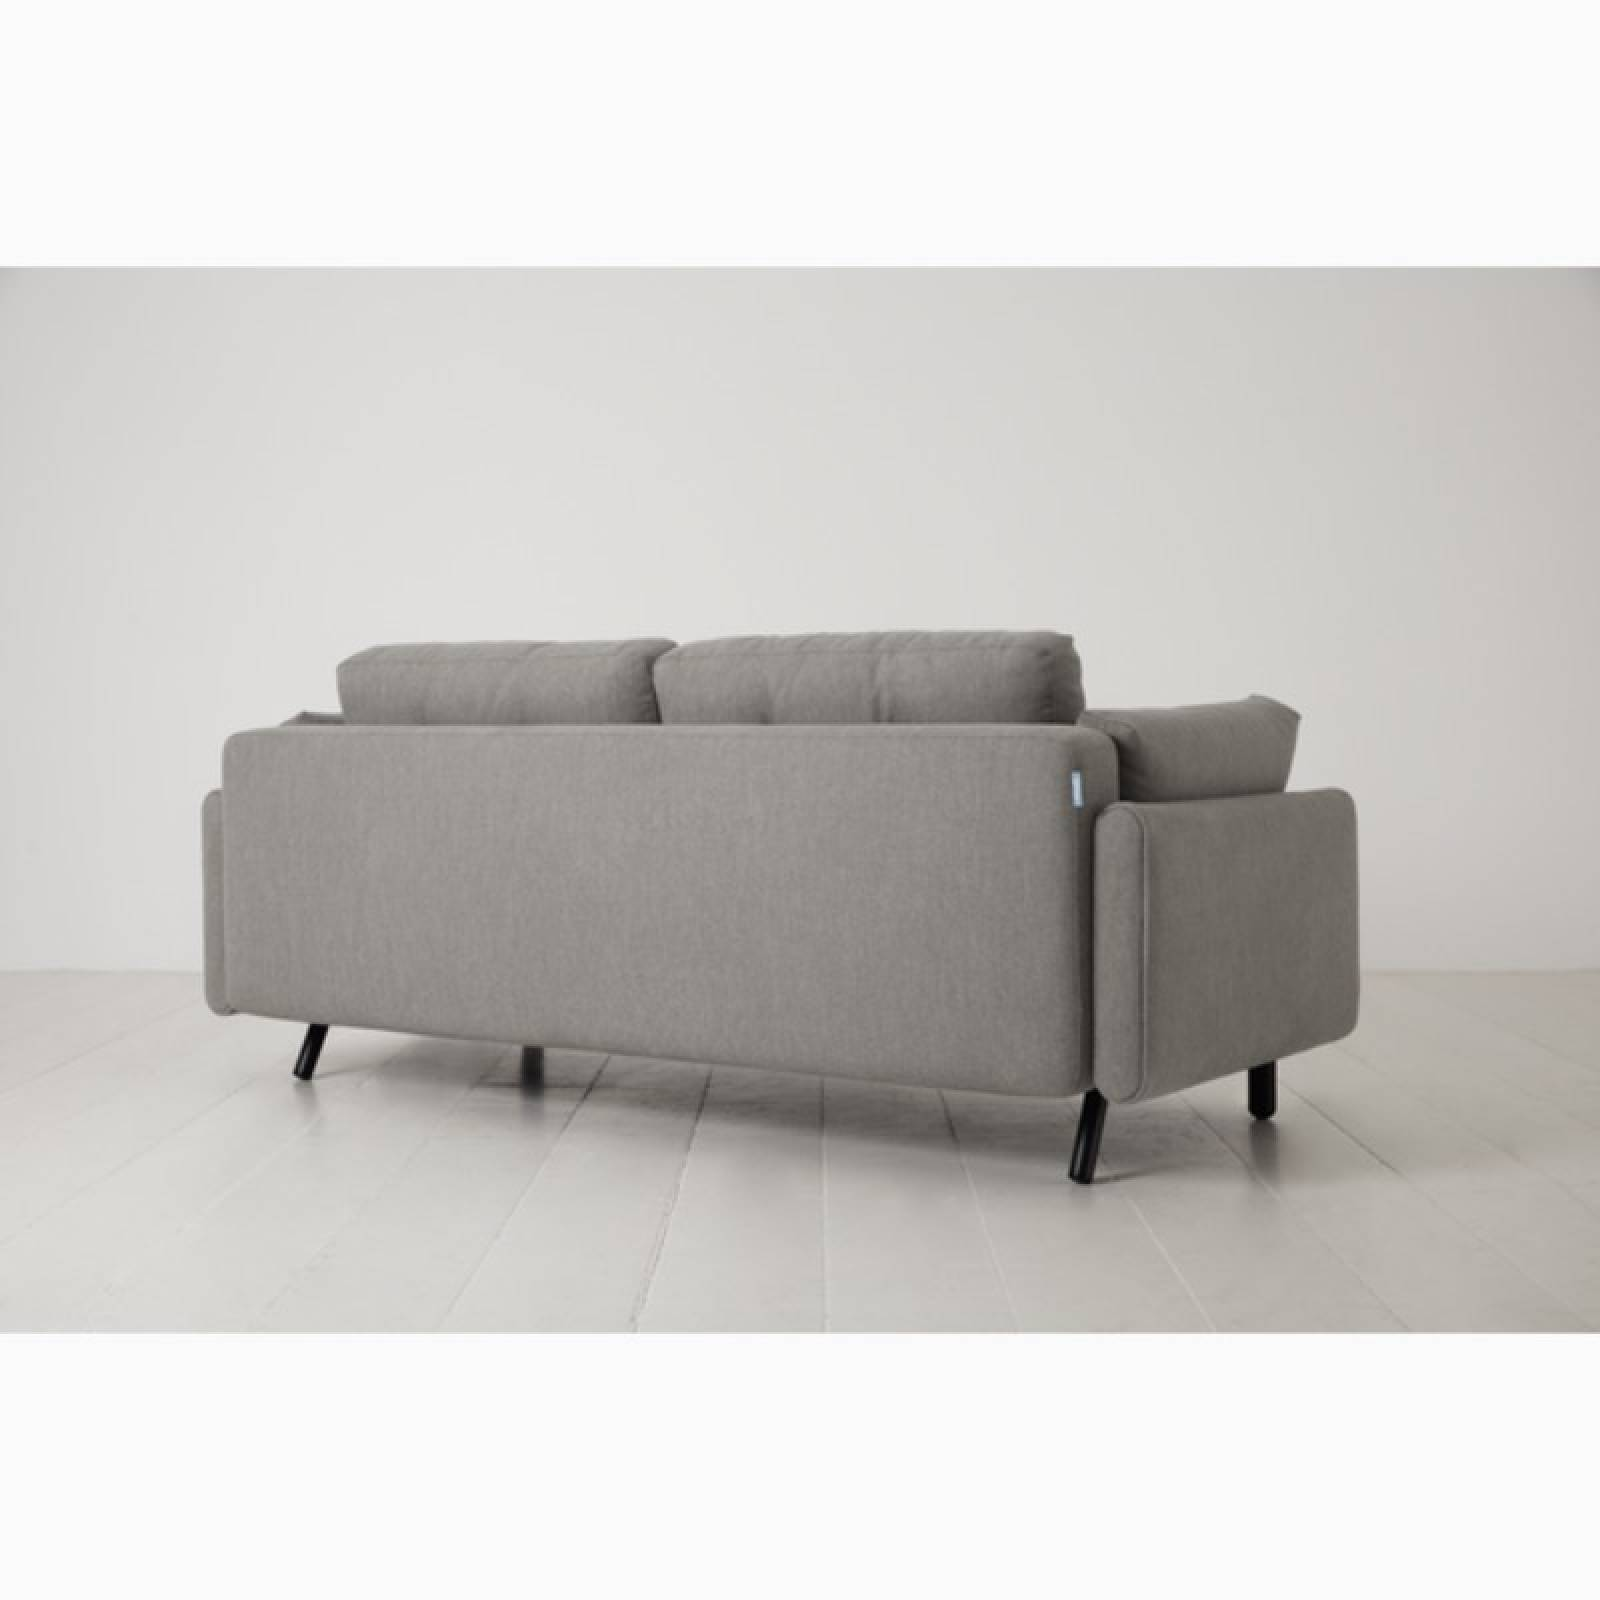 Swyft - Model 04 - 3 Seater Sofa Bed - Linen Shadow thumbnails